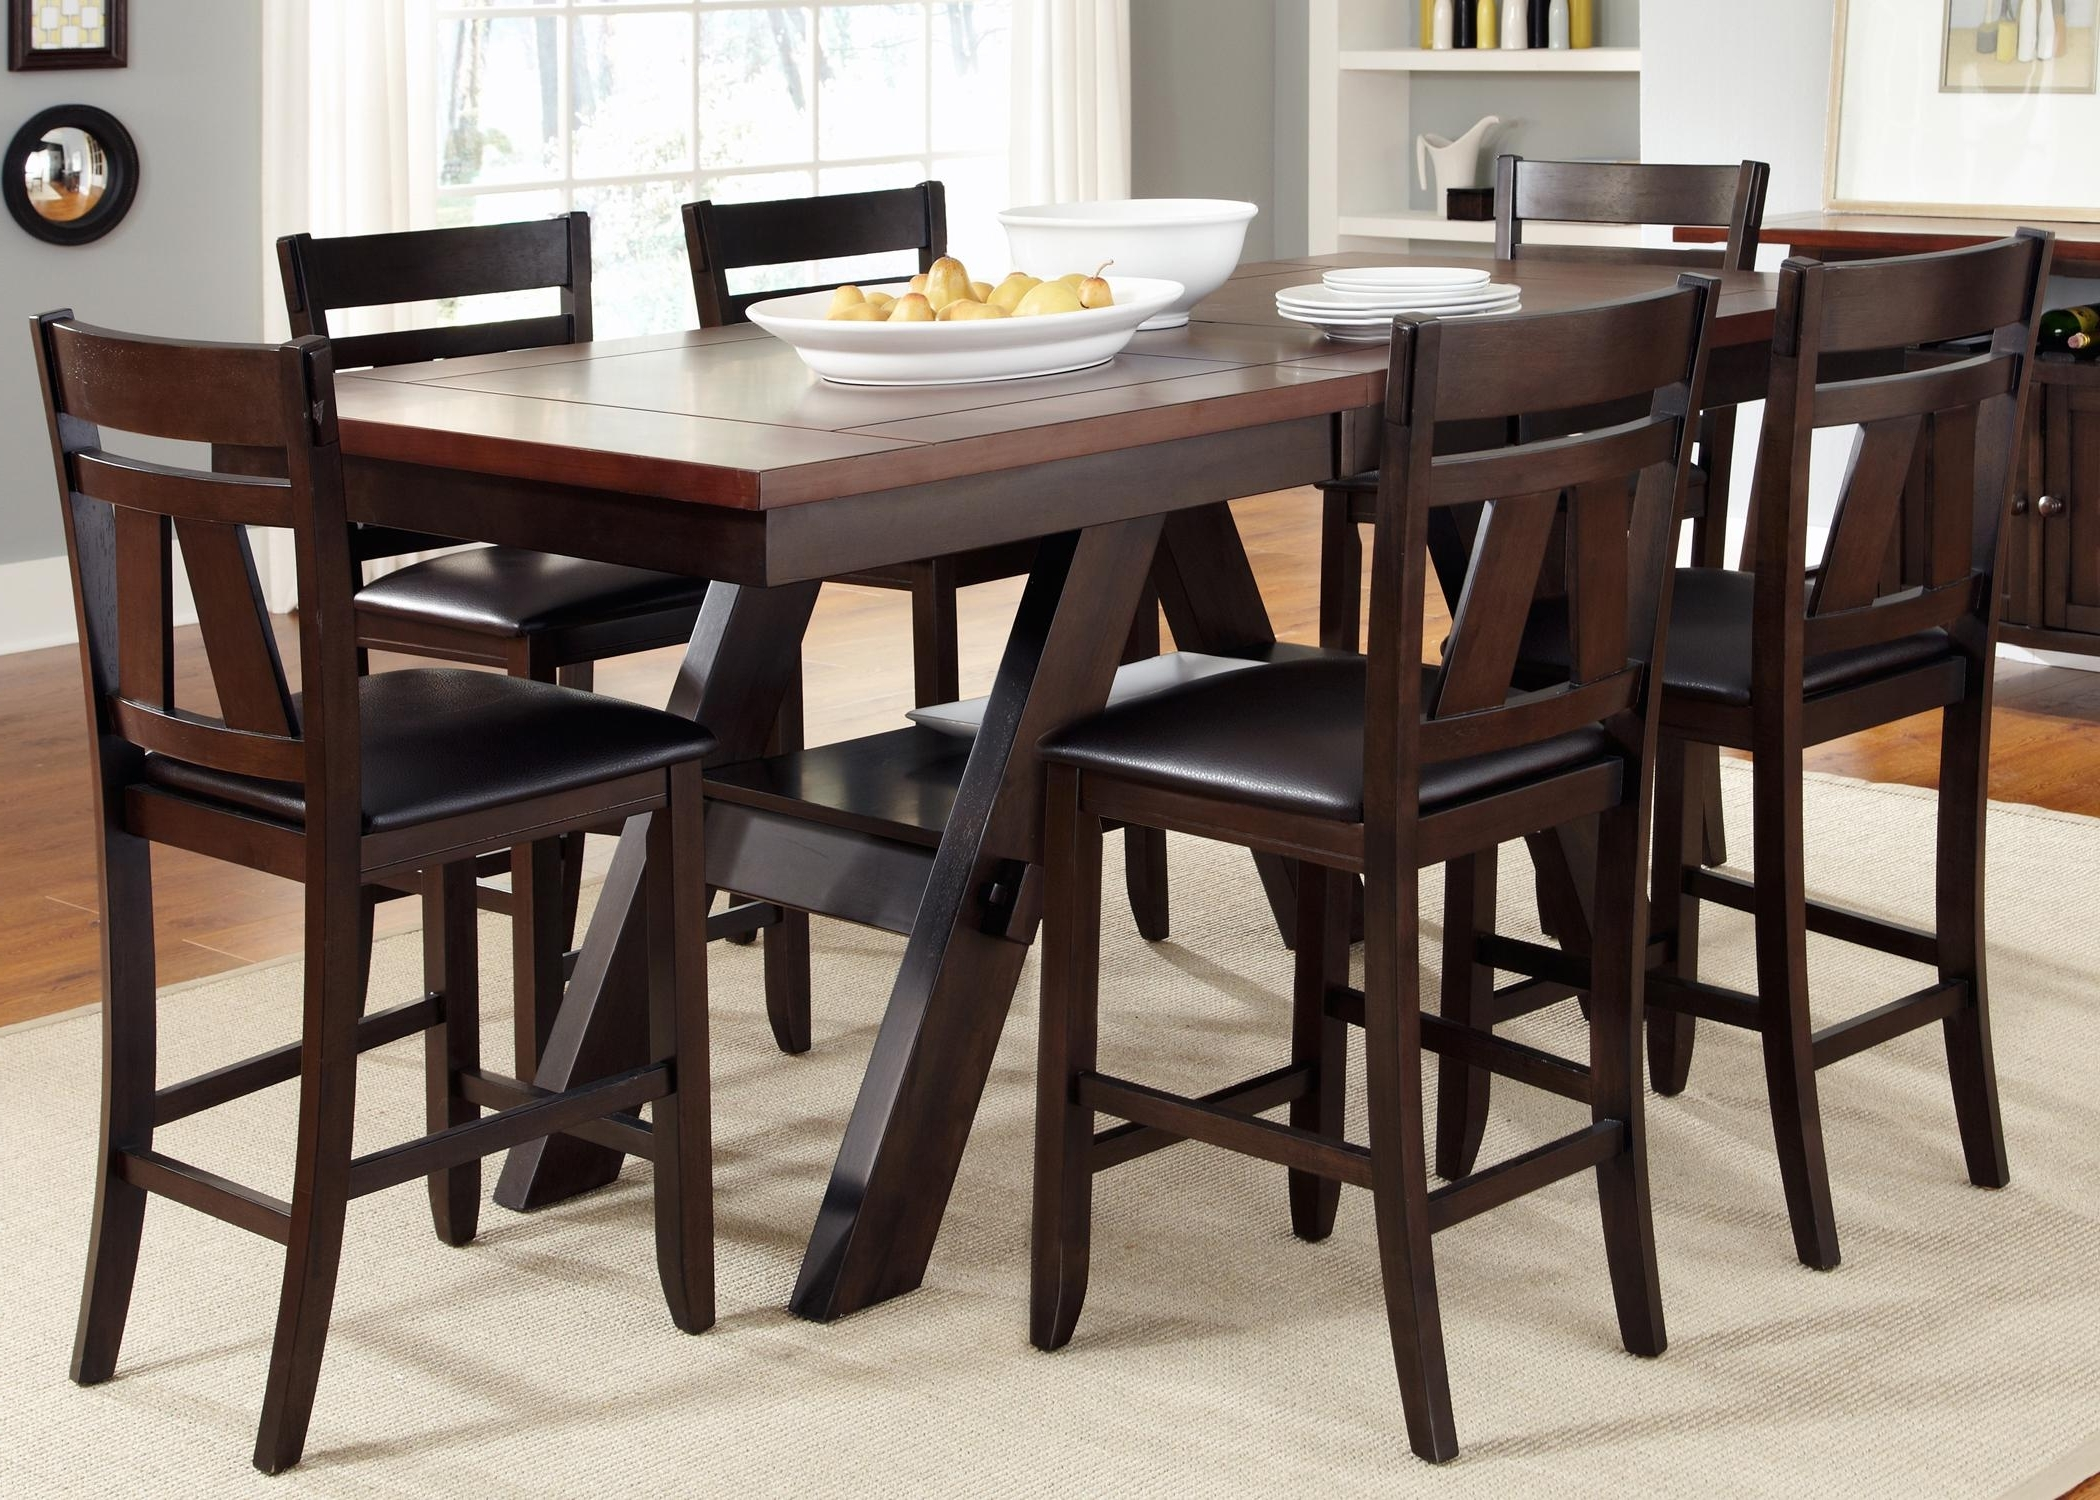 Trendy Parquet 7 Piece Dining Sets In 7 Piece Trestle Gathering Table With Counter Height Chairs Set (View 19 of 25)